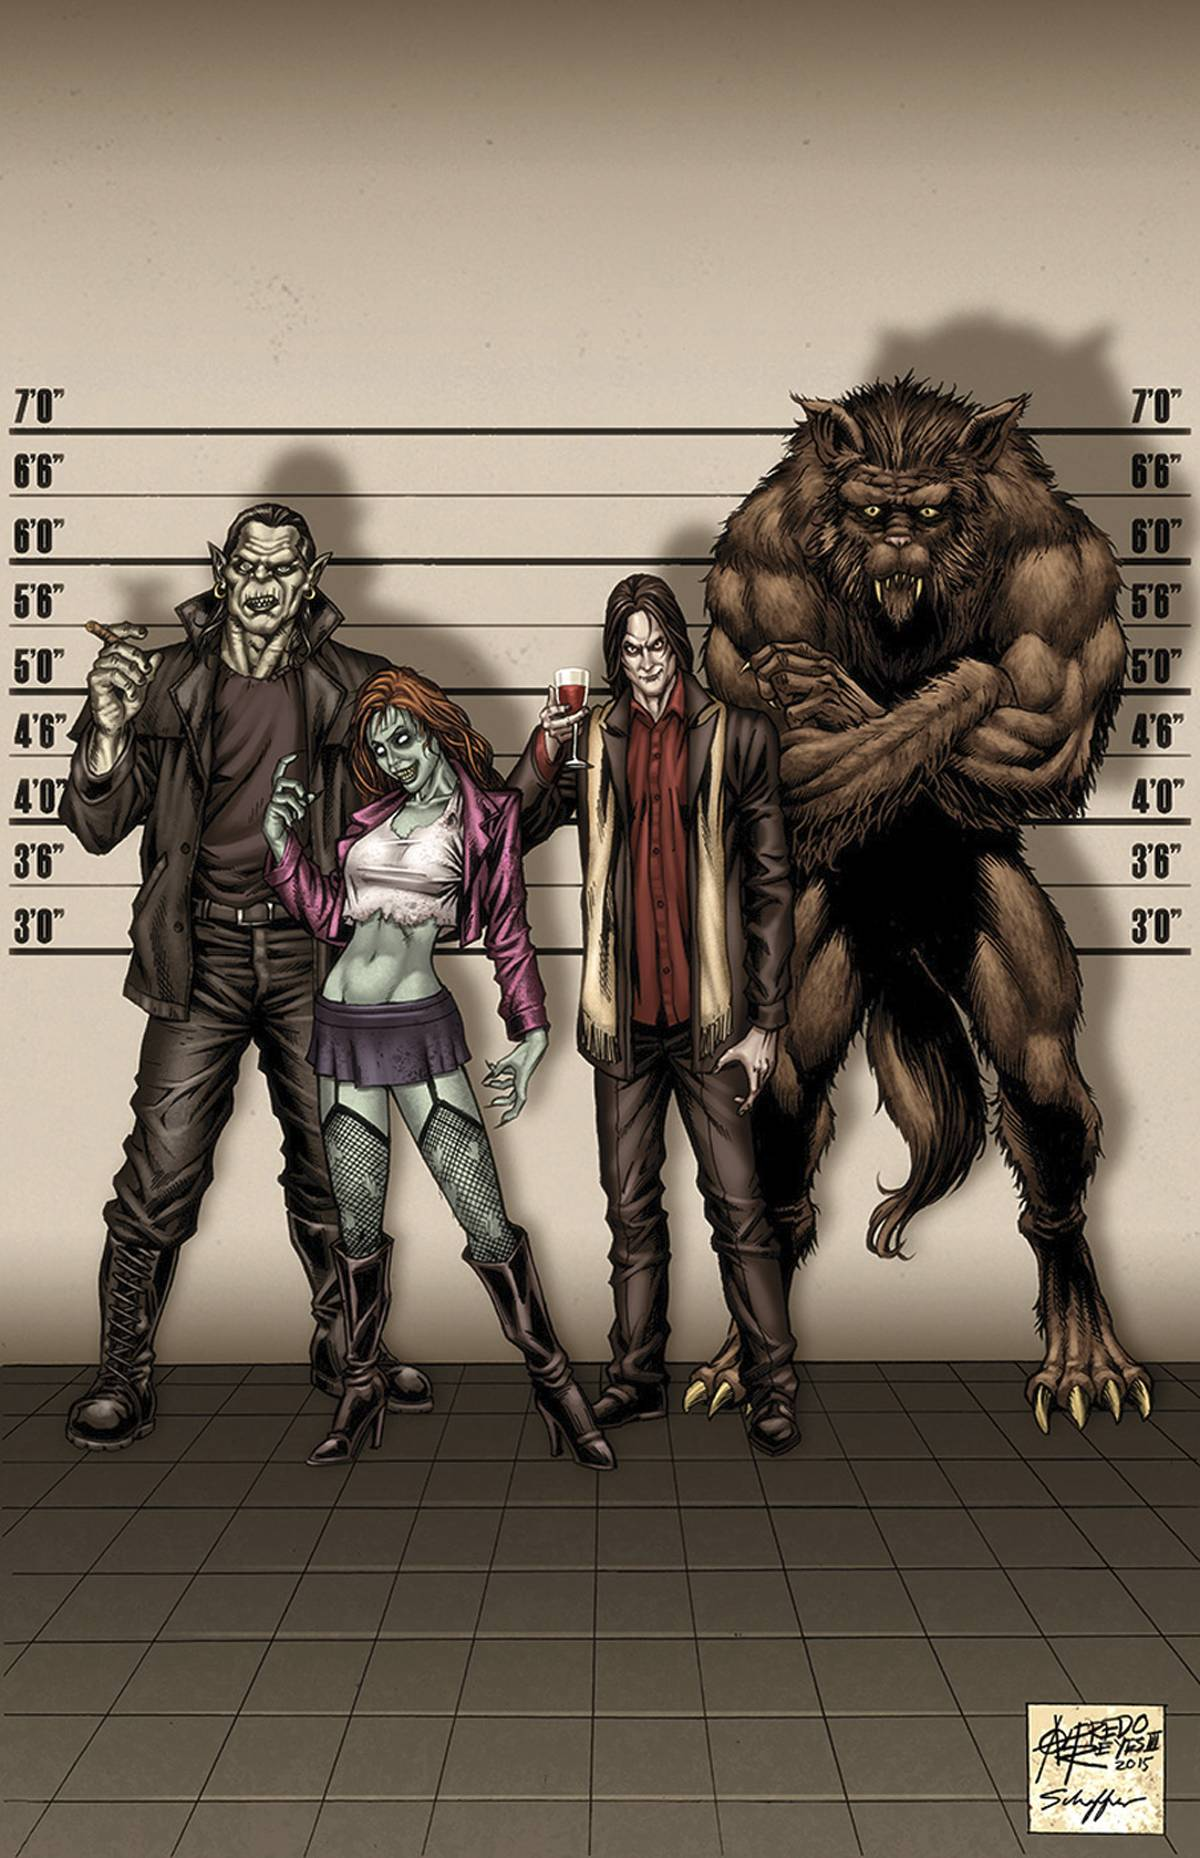 Grimm Fairy Tales: Escape From Monster Island #1 (Reyes